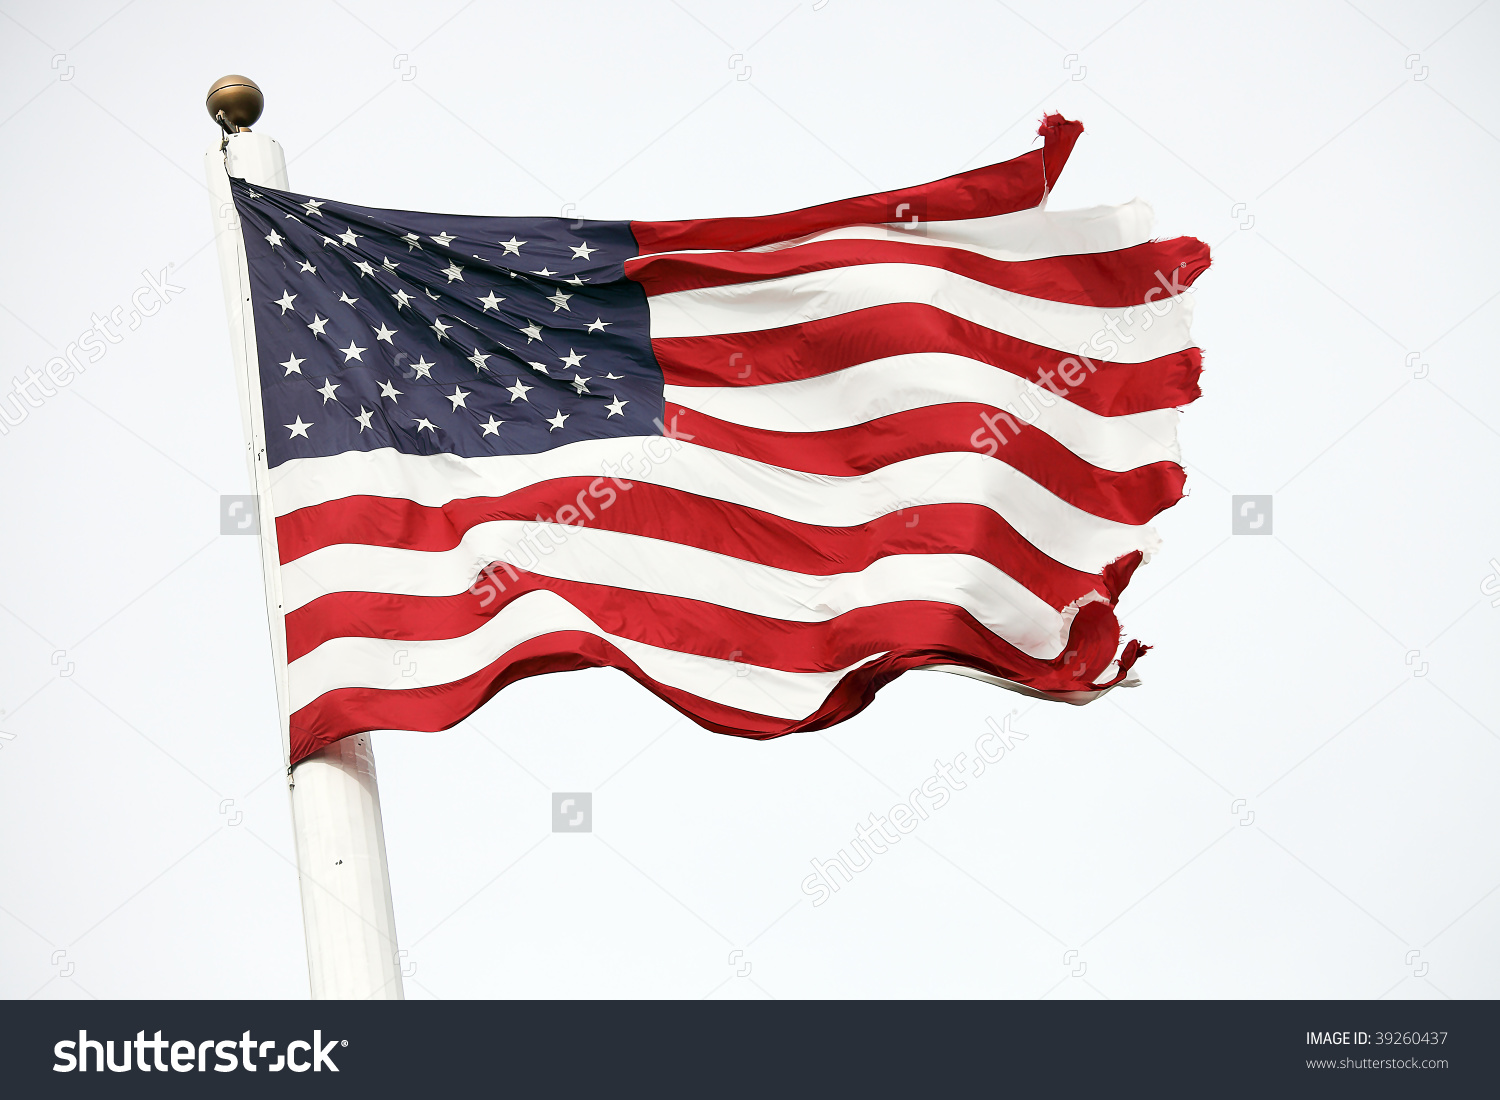 Tattered us flag clipart freeuse library Tattered us flag clipart - ClipartFest freeuse library